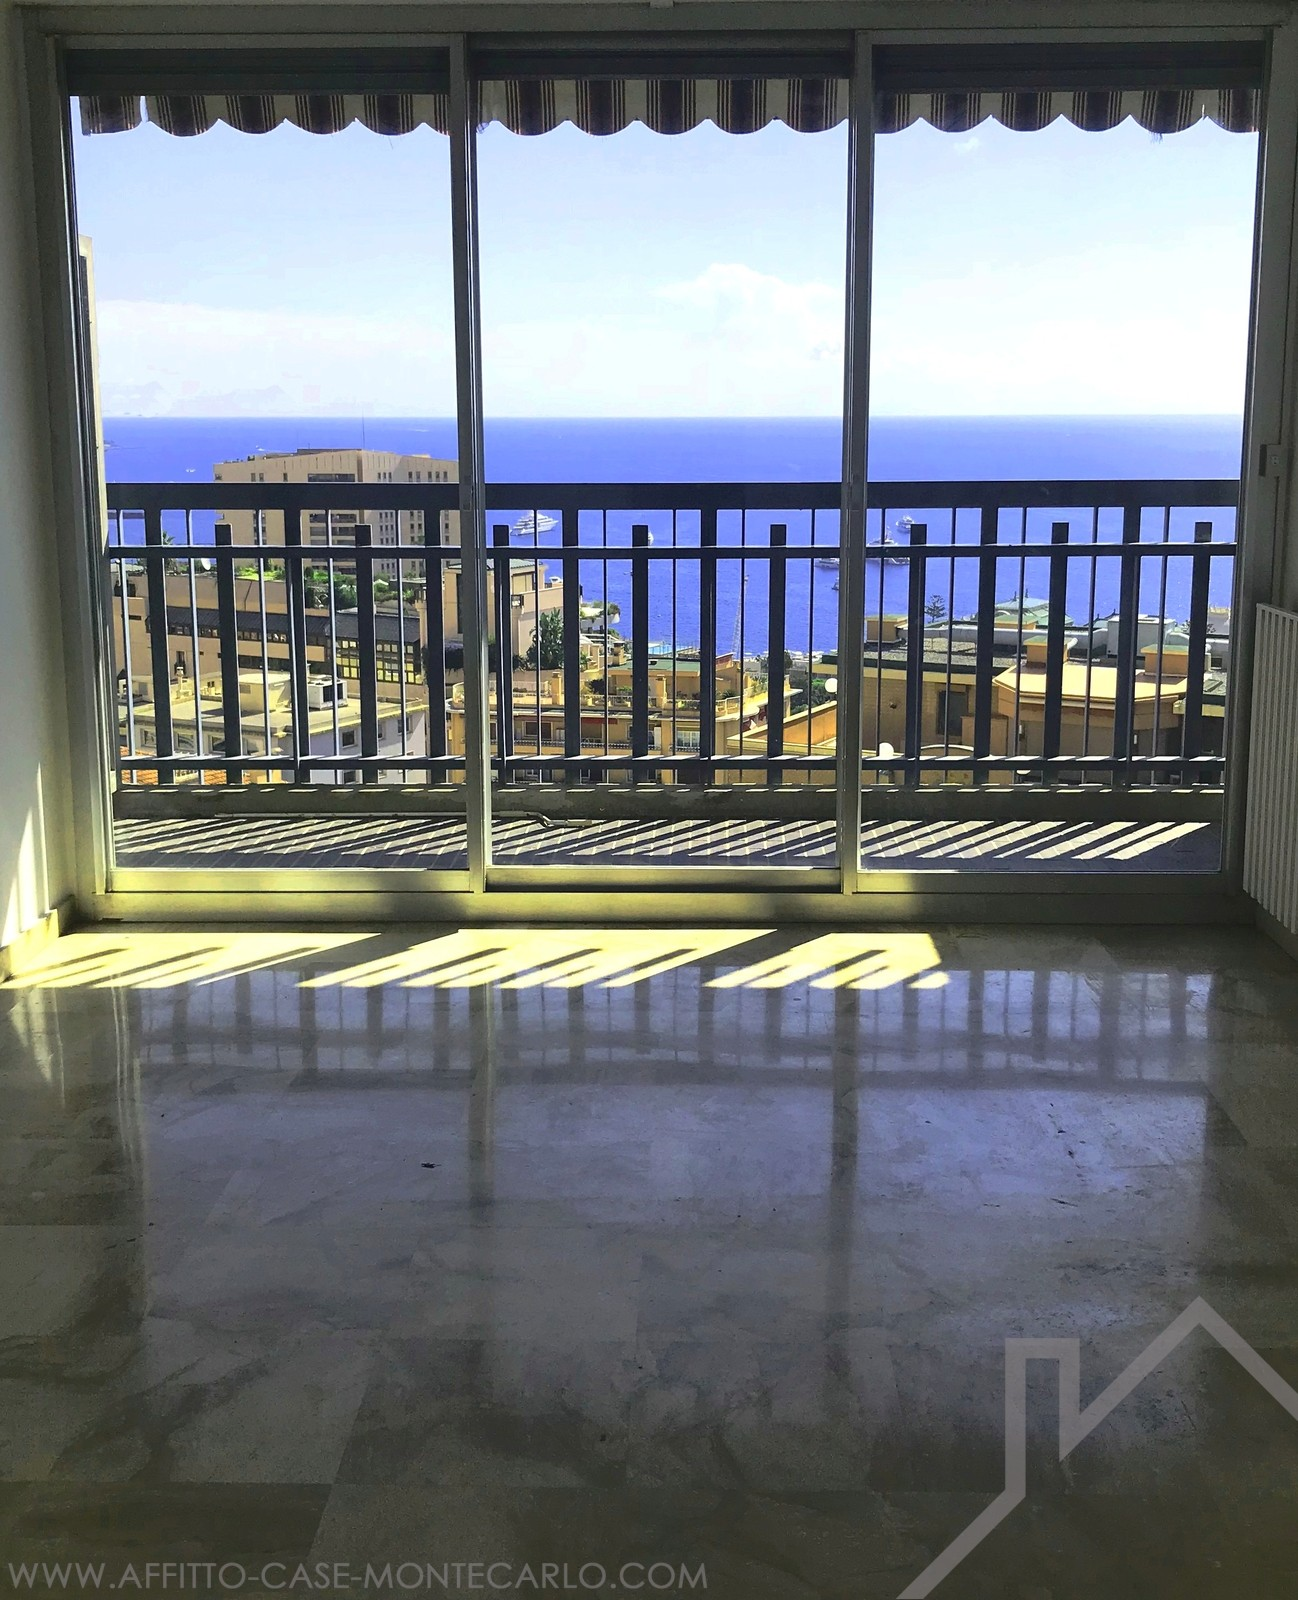 MILLEFIORI - Studio - Apartments for rent in Monaco